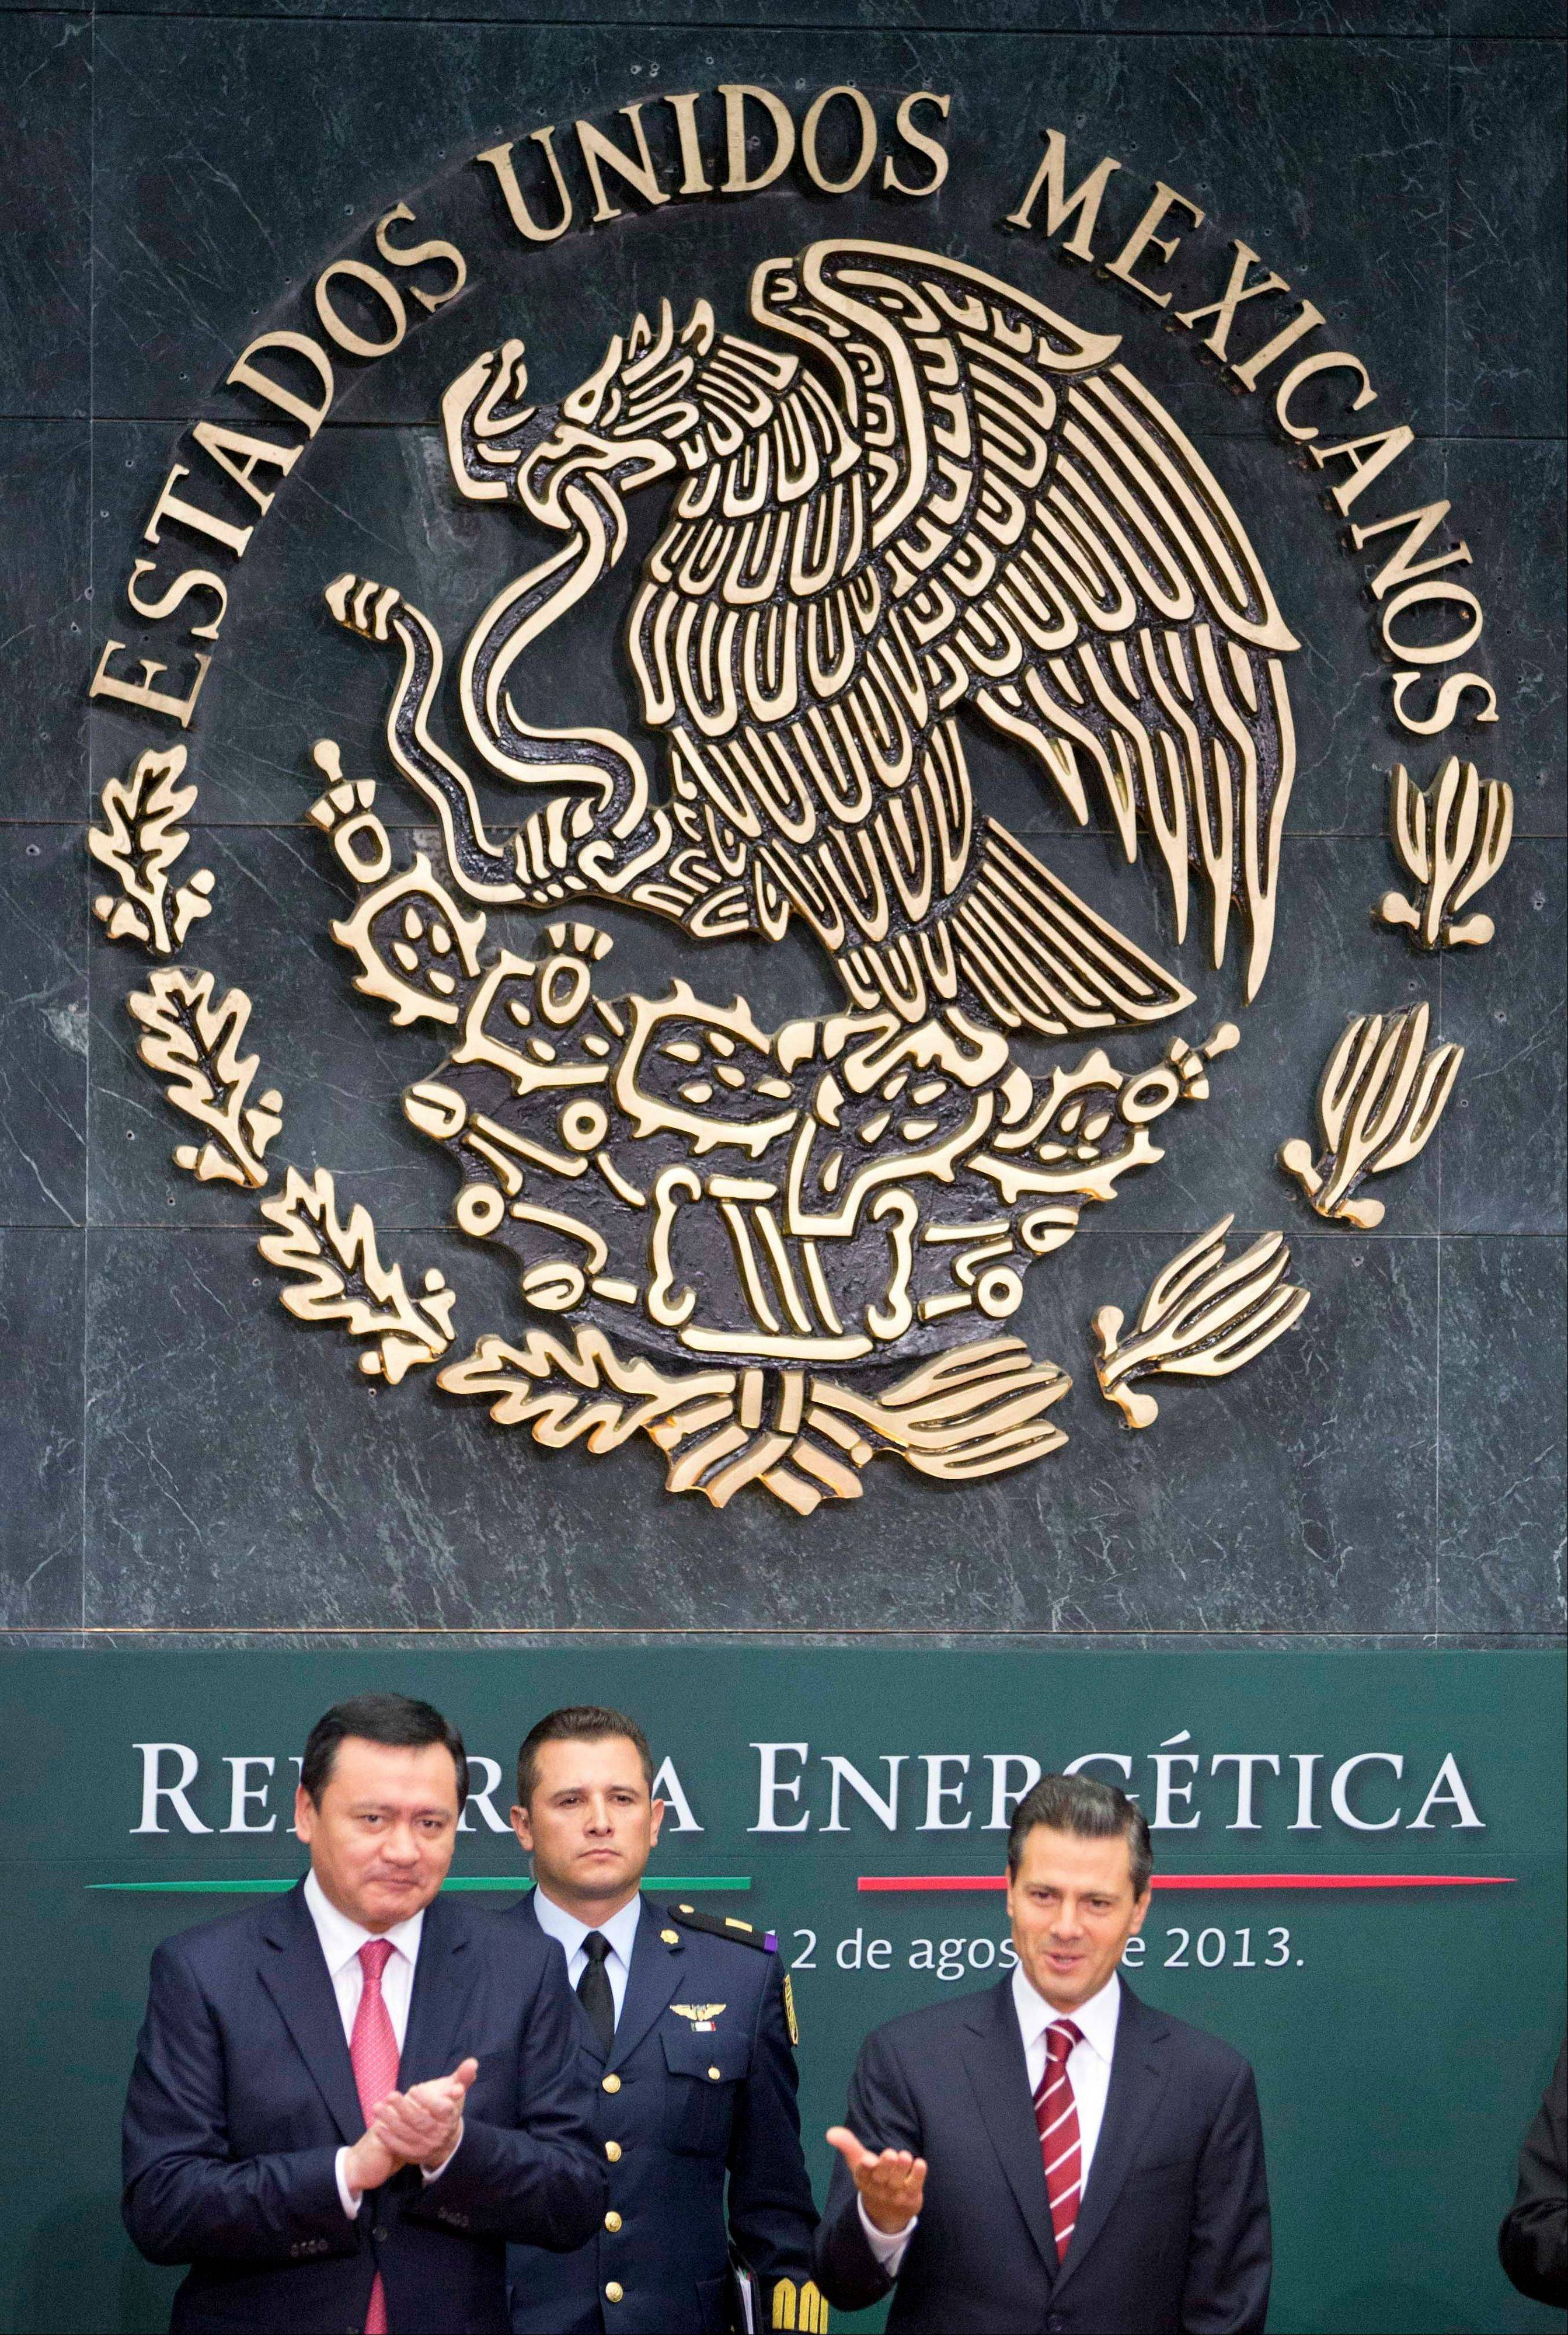 Mexico�s President Enrique Pena Nieto, right, greets the audience as his Interior Secretary Miguel Angel Osorio Chong, left, applauds upon his arrival to the ceremony to announce his proposal that would allow private firms in the oil industry in Mexico City, Monday, Aug. 12, 2013. Pena Nieto is making his most daring gamble yet, with a proposal to lift a decades-old ban on private companies in the state-run oil industry, a cornerstone of Mexico�s national pride.